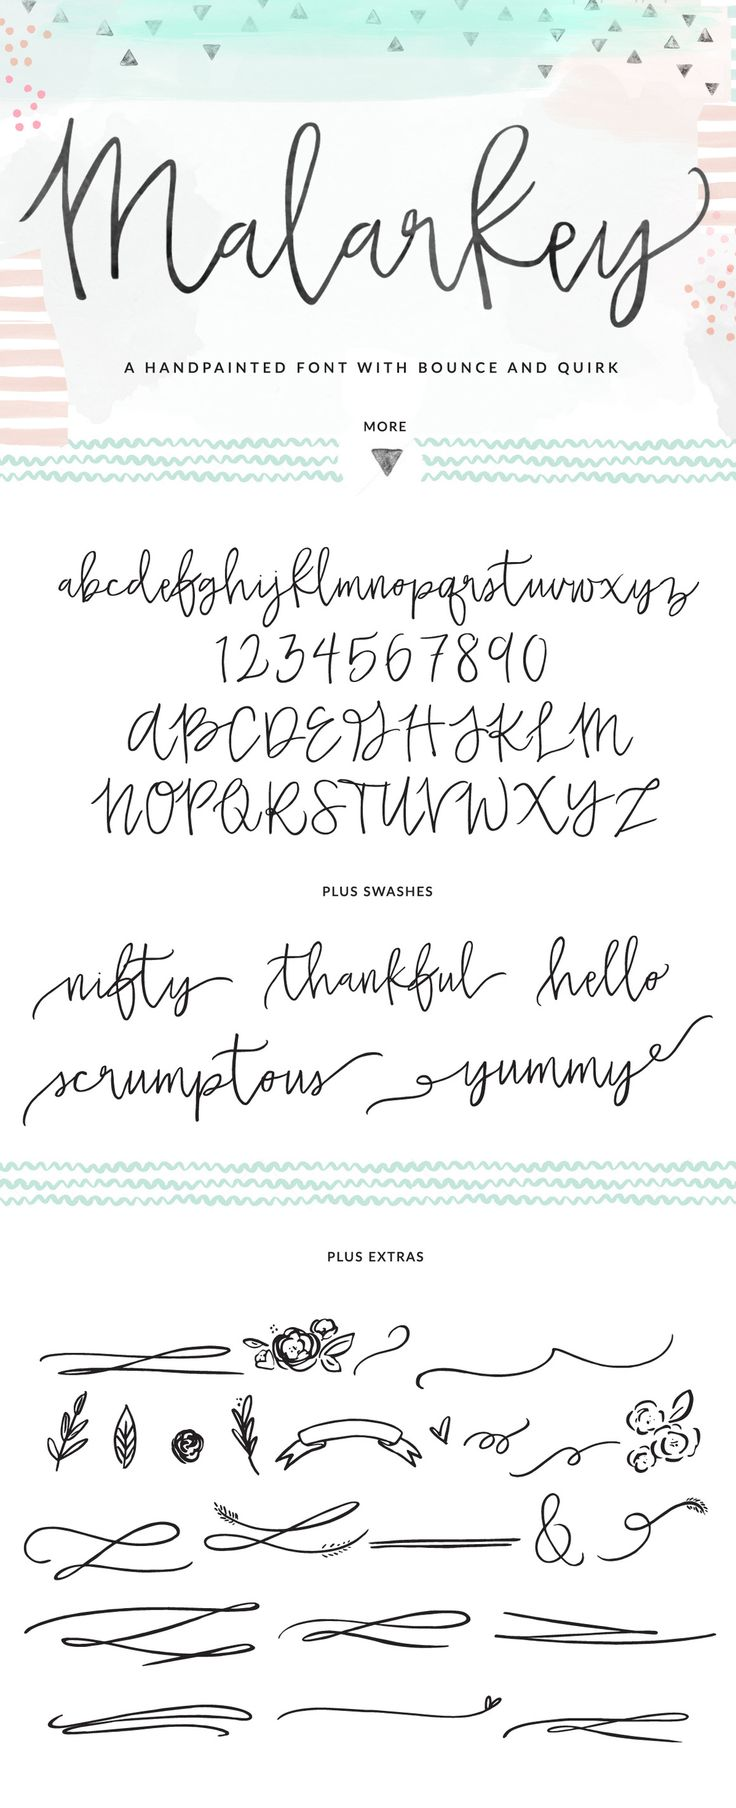 Meet Malarkey, the latest Angie Makes font. Malarkey is a hand brushed, modern calligraphy font with tons of swashes + extras.